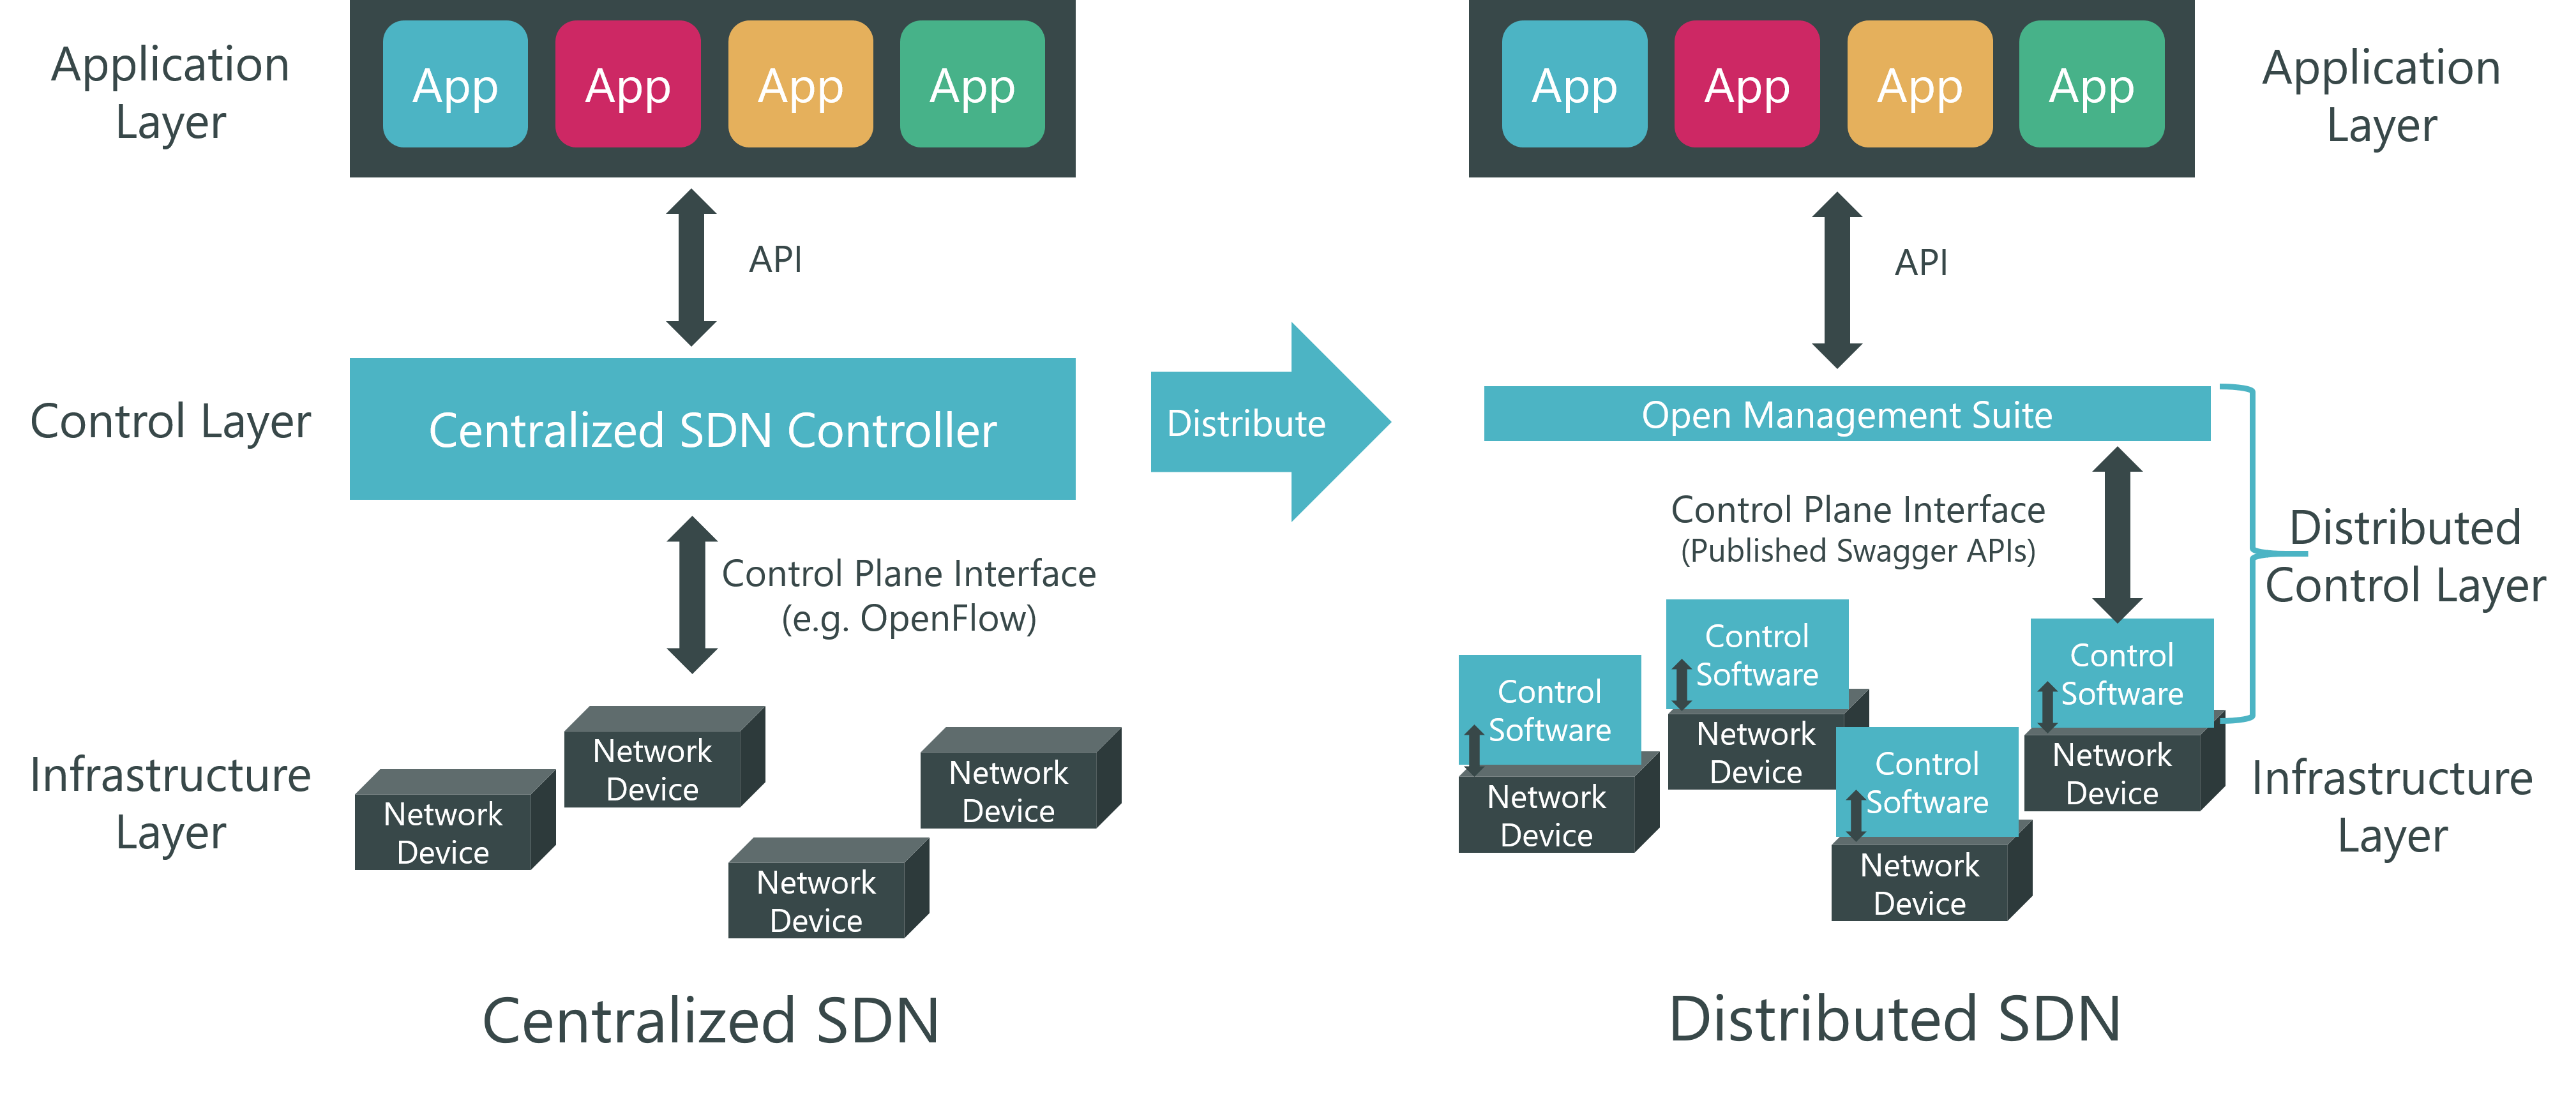 Distributed SDN